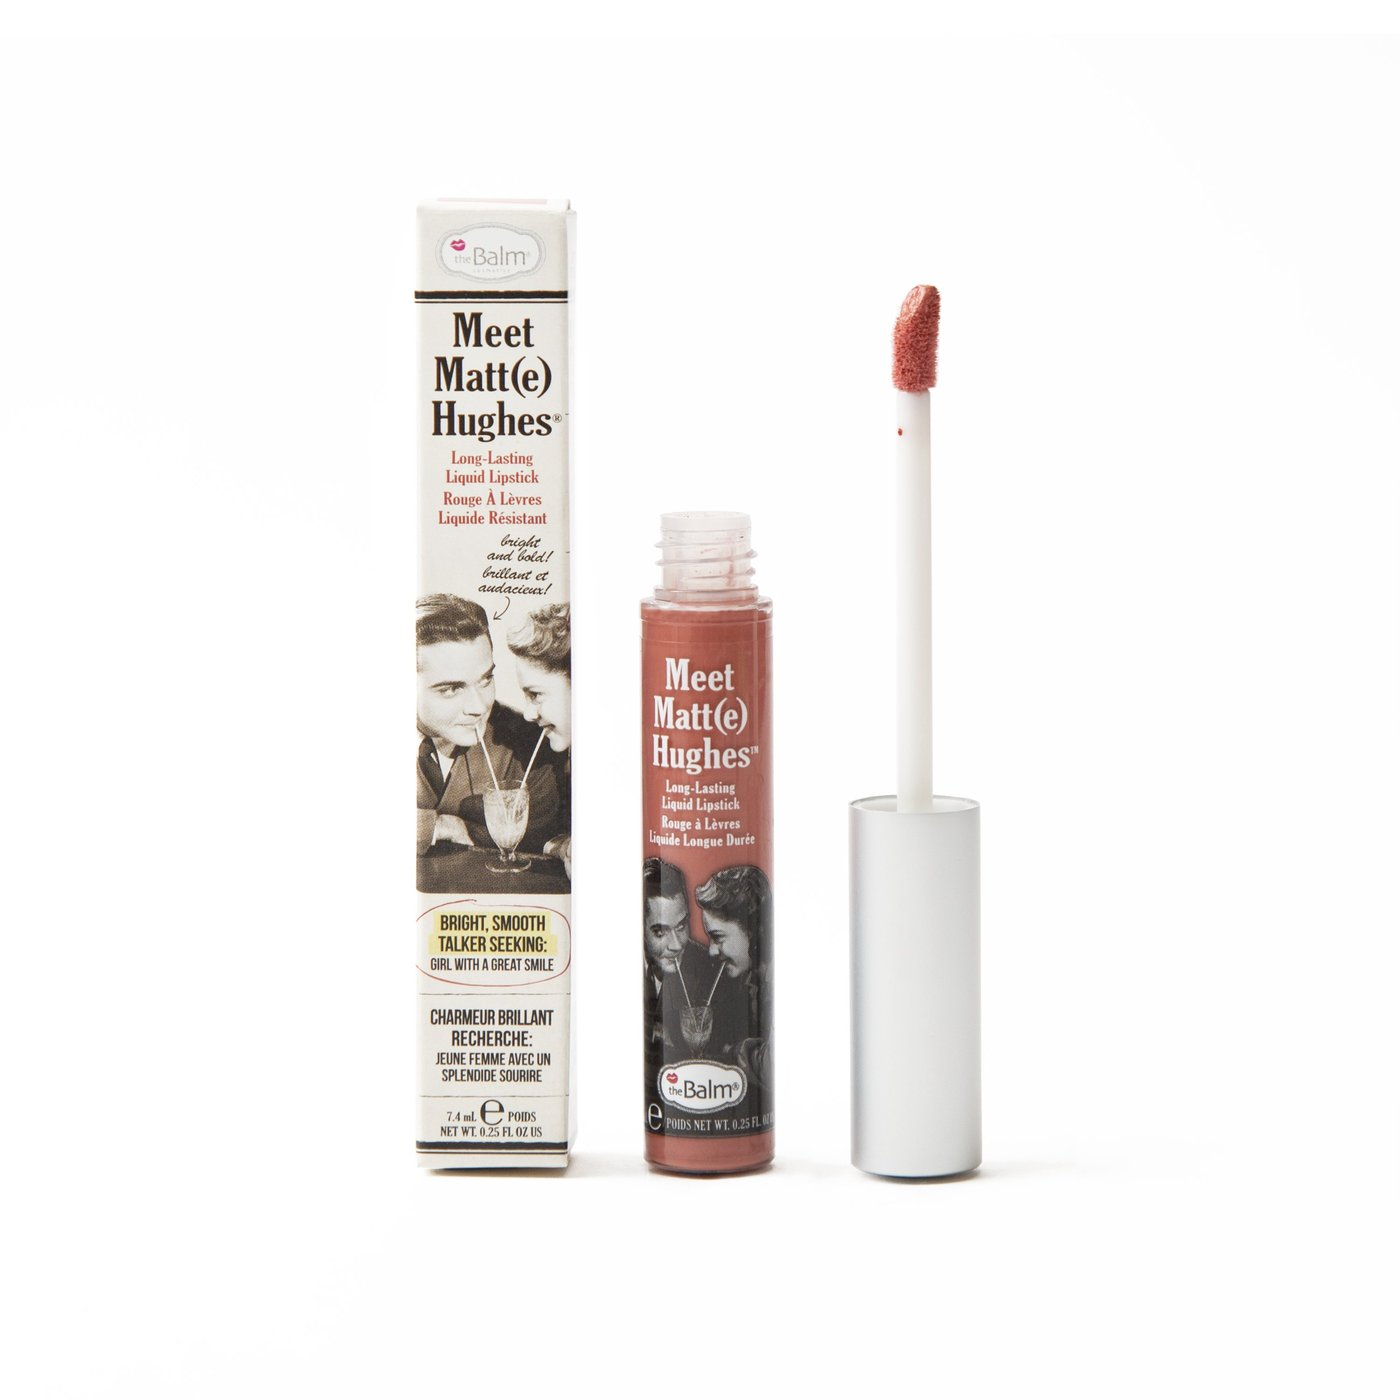 theBalm Meet Matte Hughes Long Lasting Liquid Lipstick - Doting